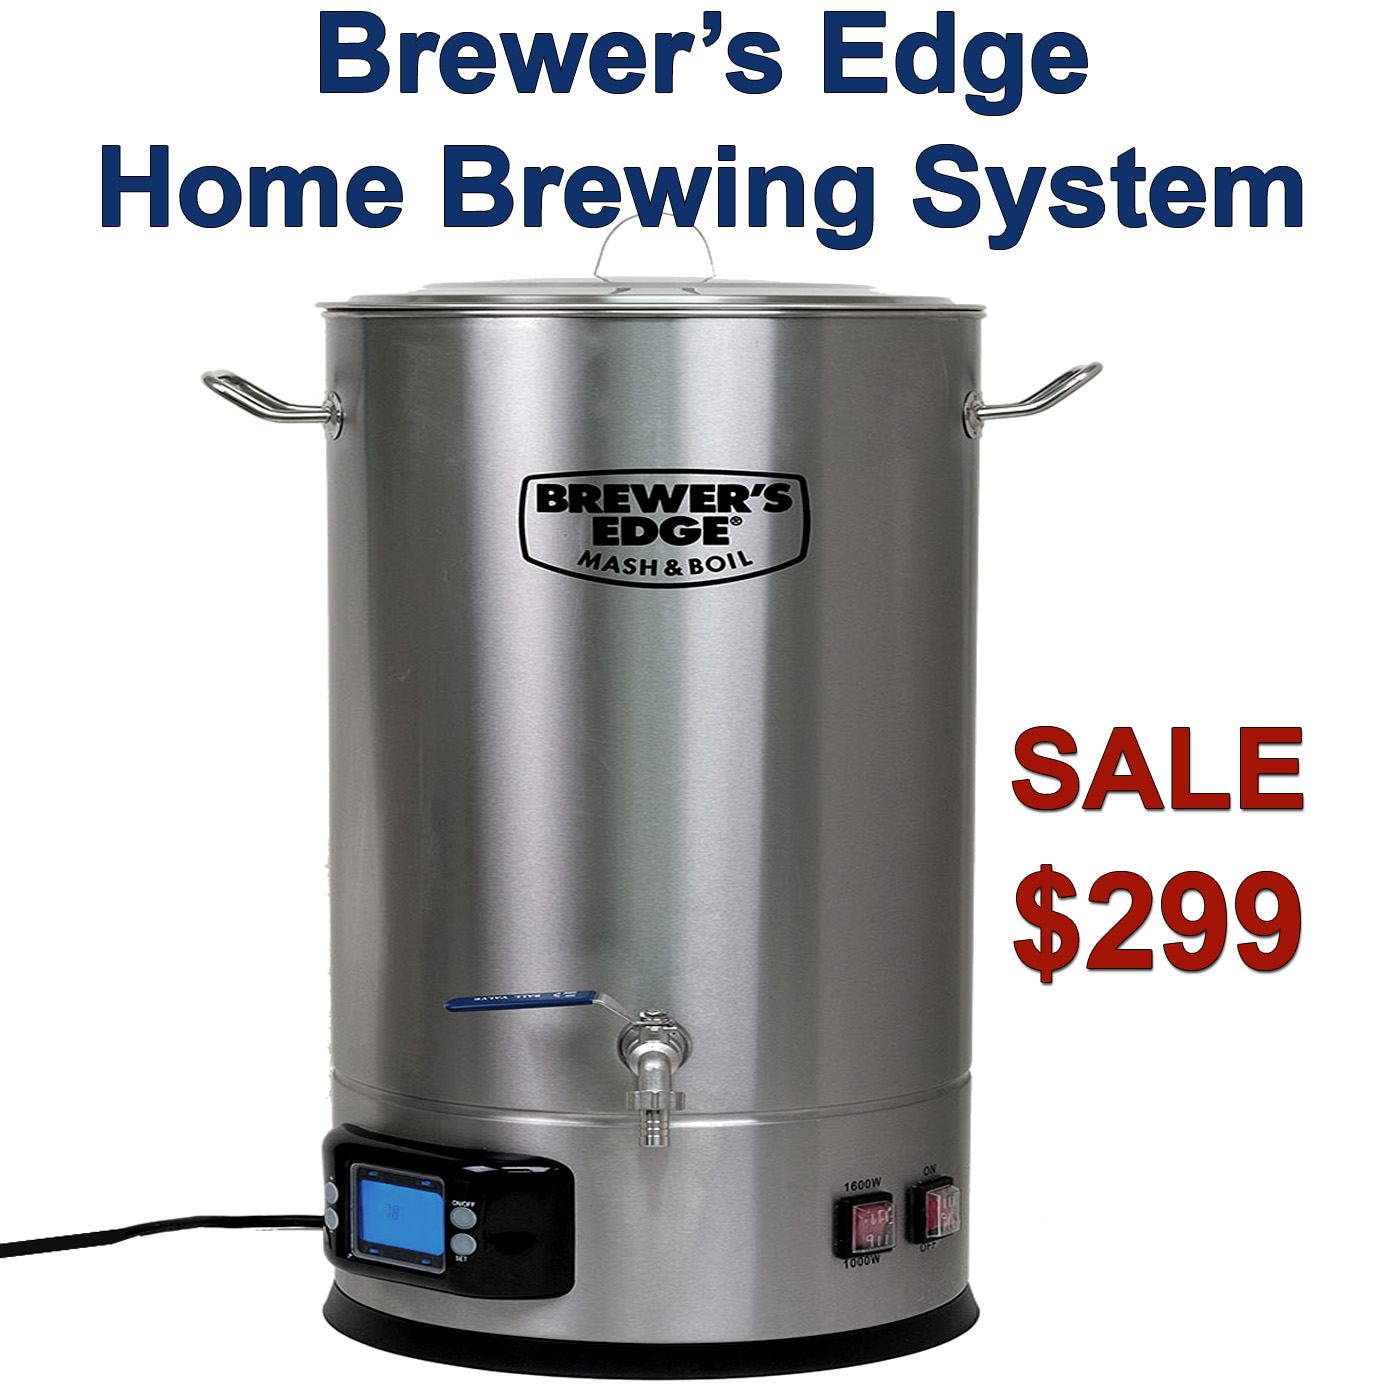 Brewers Edge Homebrewing System